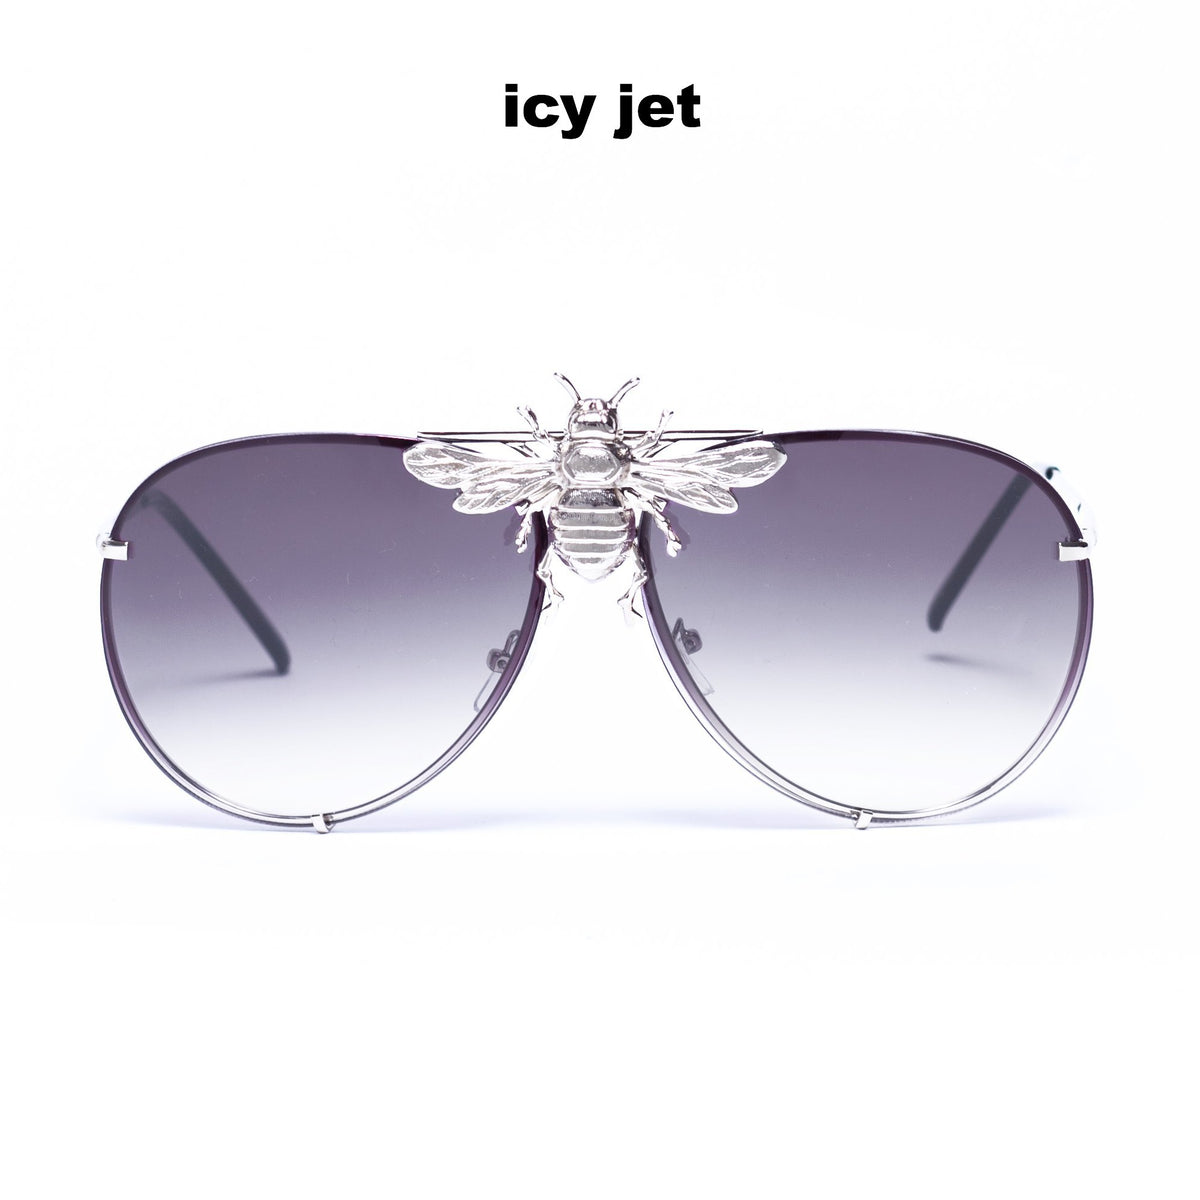 I'll Be Rich Forever Bee Sunglasses [Limited Black Out Edition] Icy Jet - jet to gray lens, silver frame, rhodium bee SUNNIES + OPTICS Sunglasses Collection, Tnemnroda man- NRODA